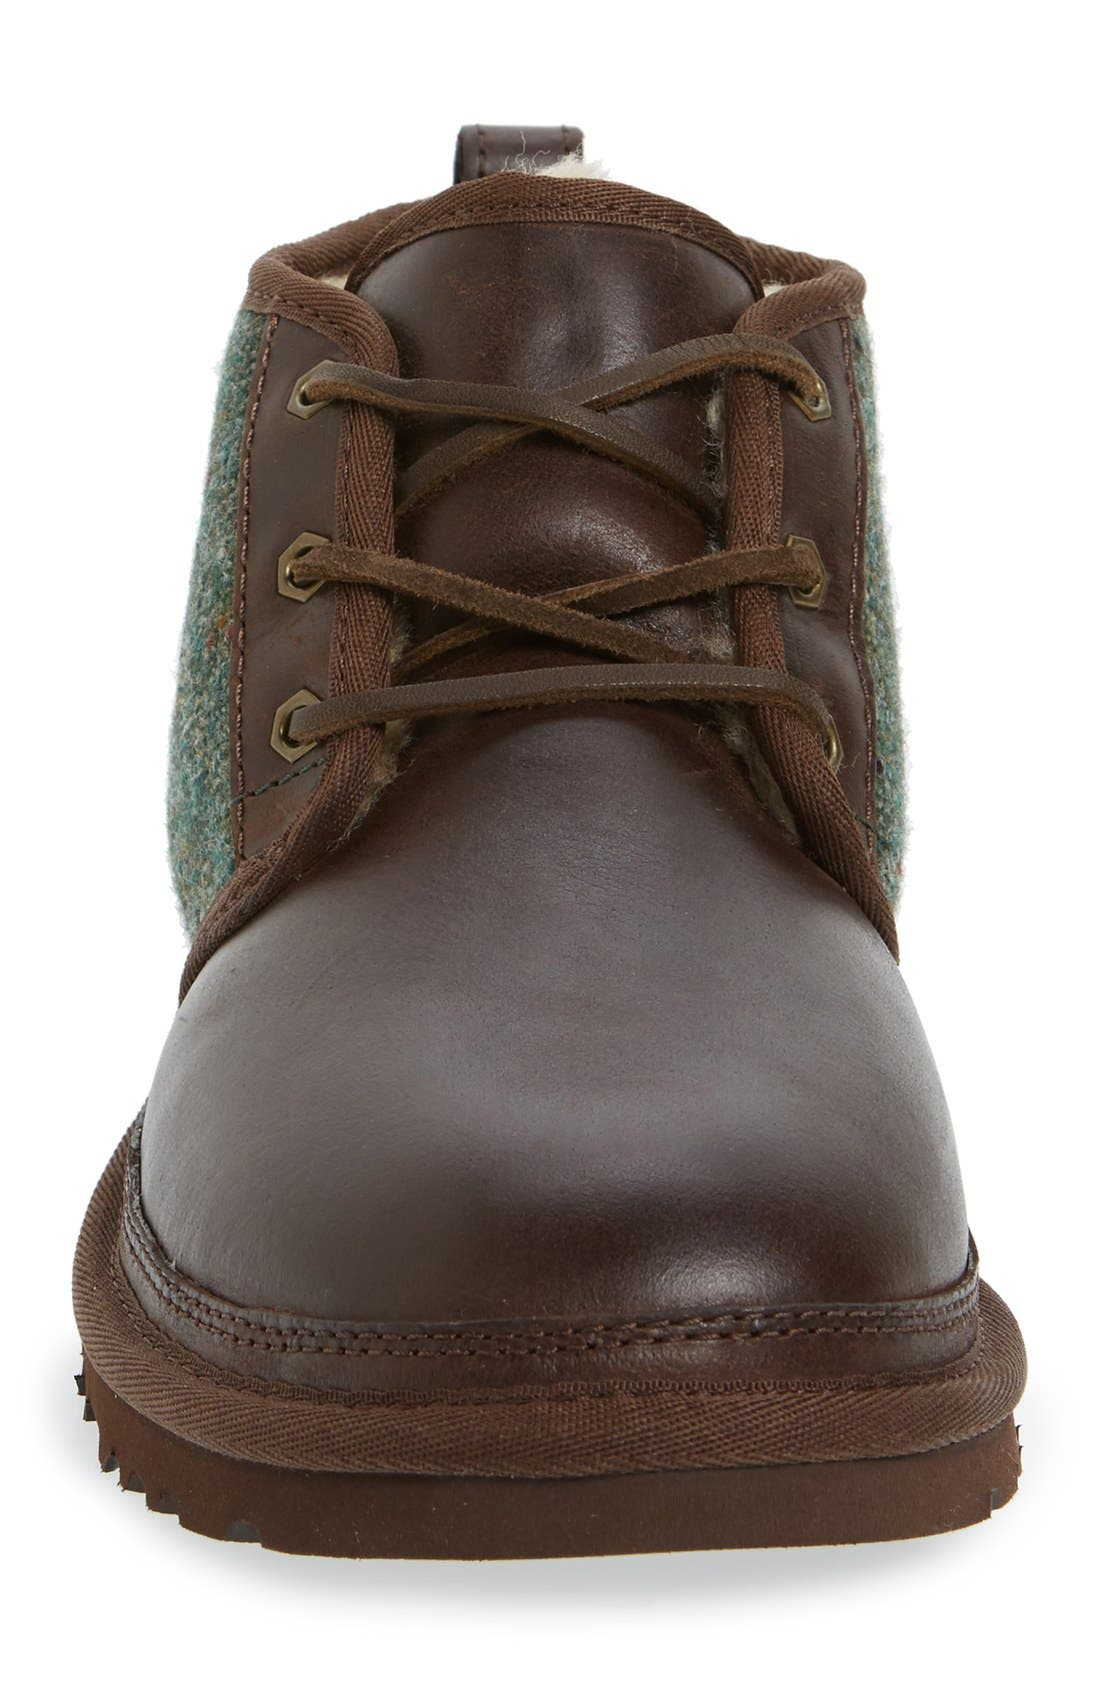 Neumel Wool & Leather Chukka Boot,                             Alternate thumbnail 3, color,                             Stout